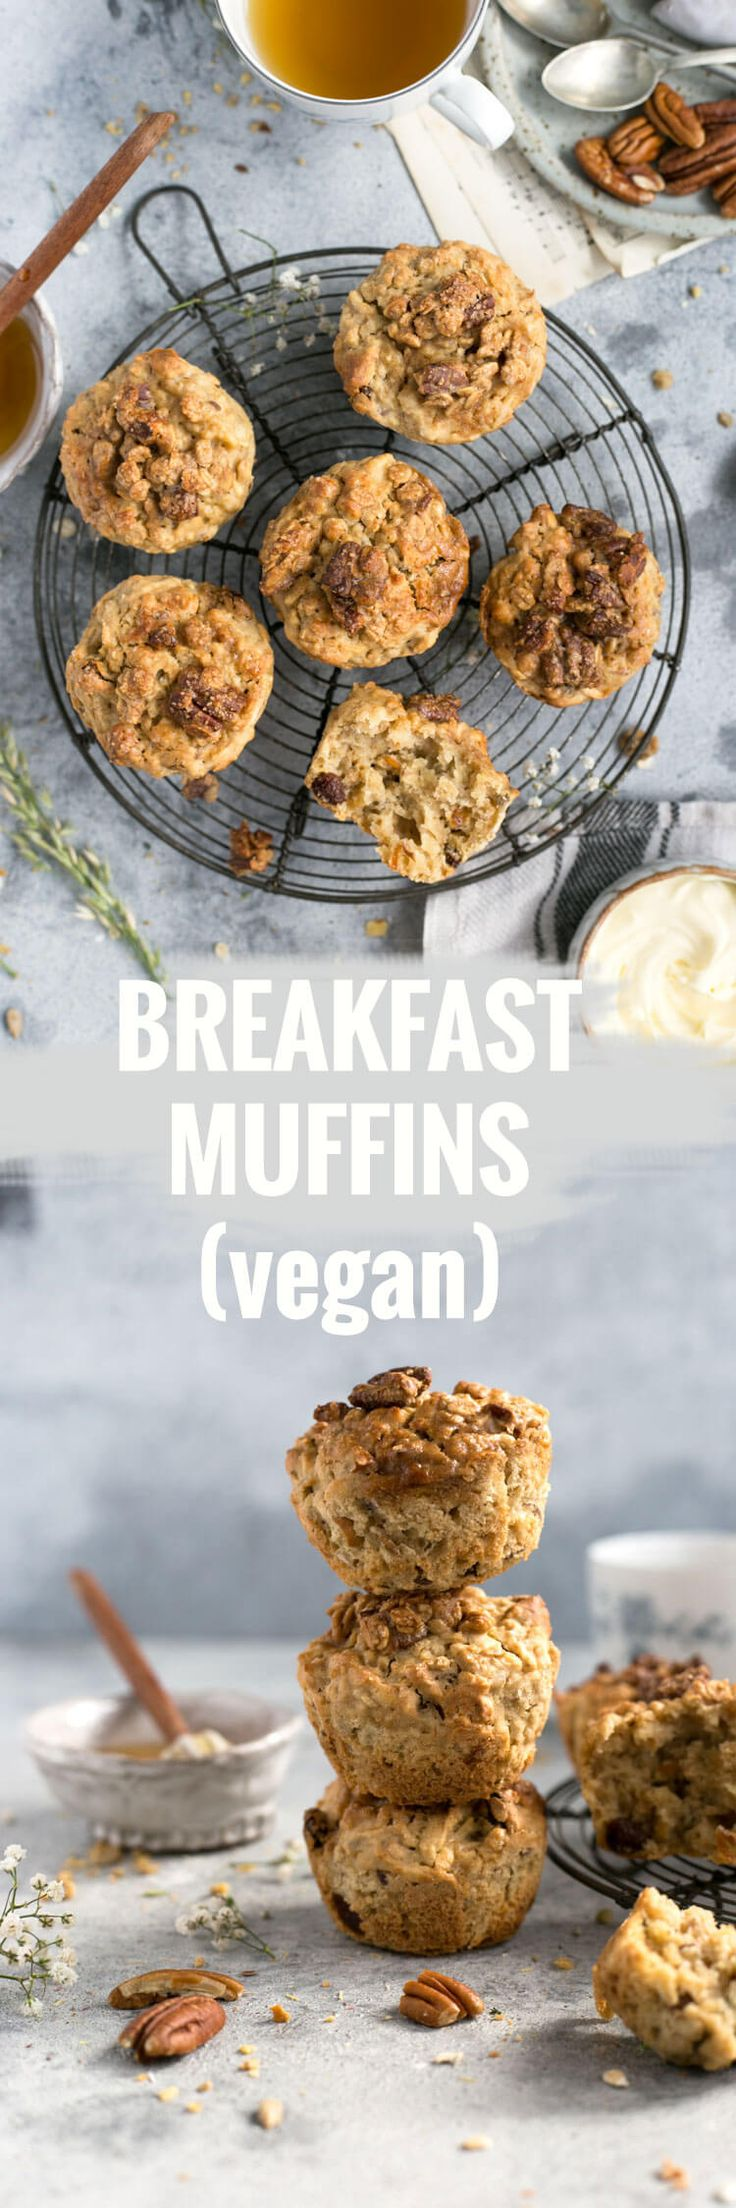 Easy and delicious breakfast muffins with crunchy pecan topping | via @annabanana.co via @annabananaco